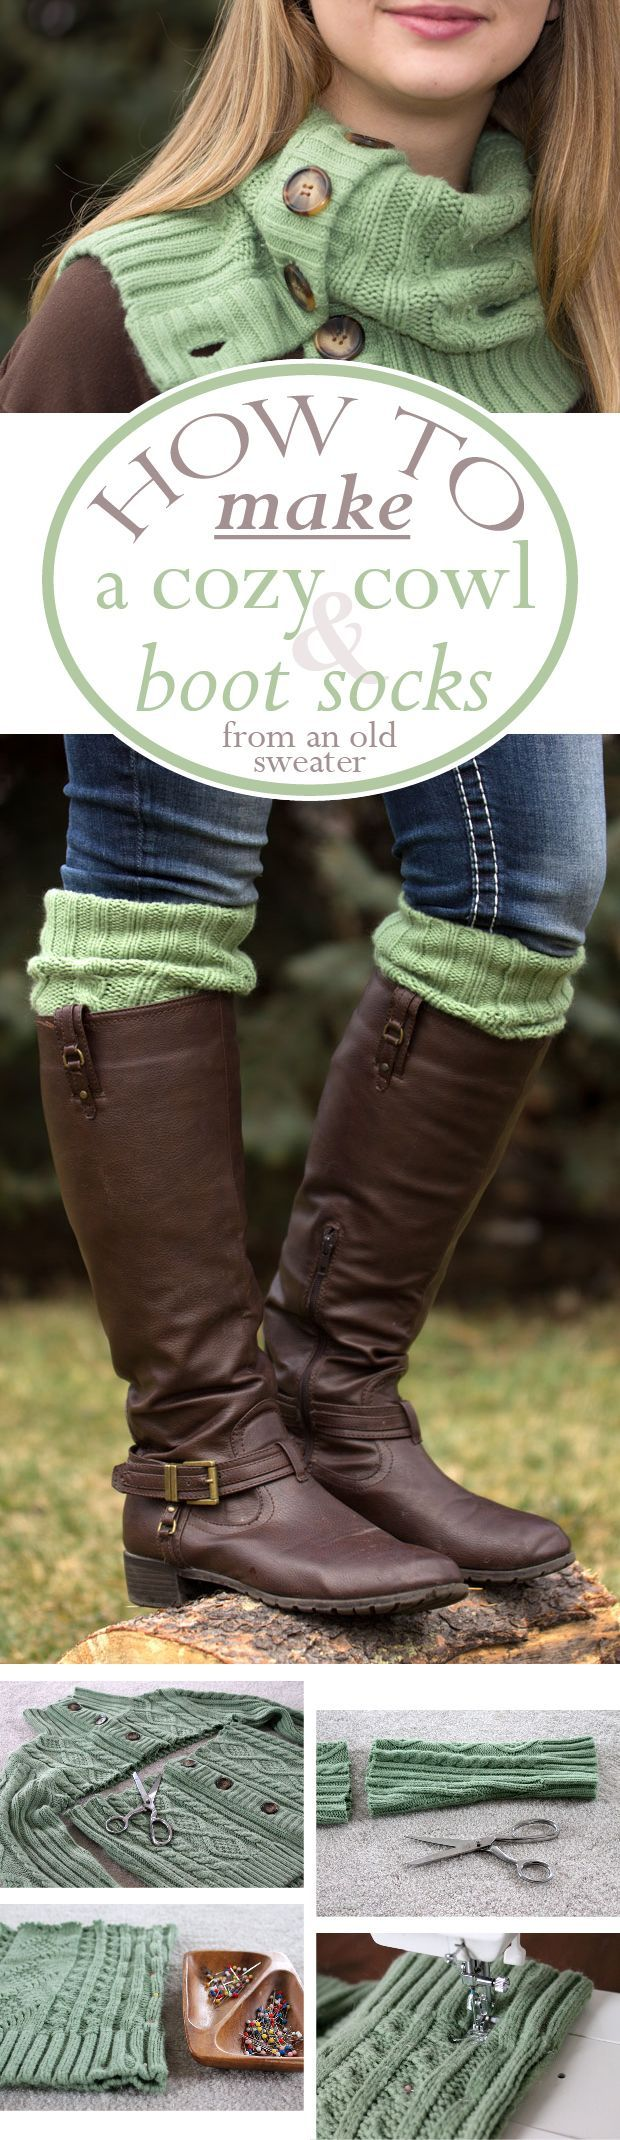 Button down sweaters become cozy cowls and boot socks. Nice pairing for One Heart Dayton gifting.